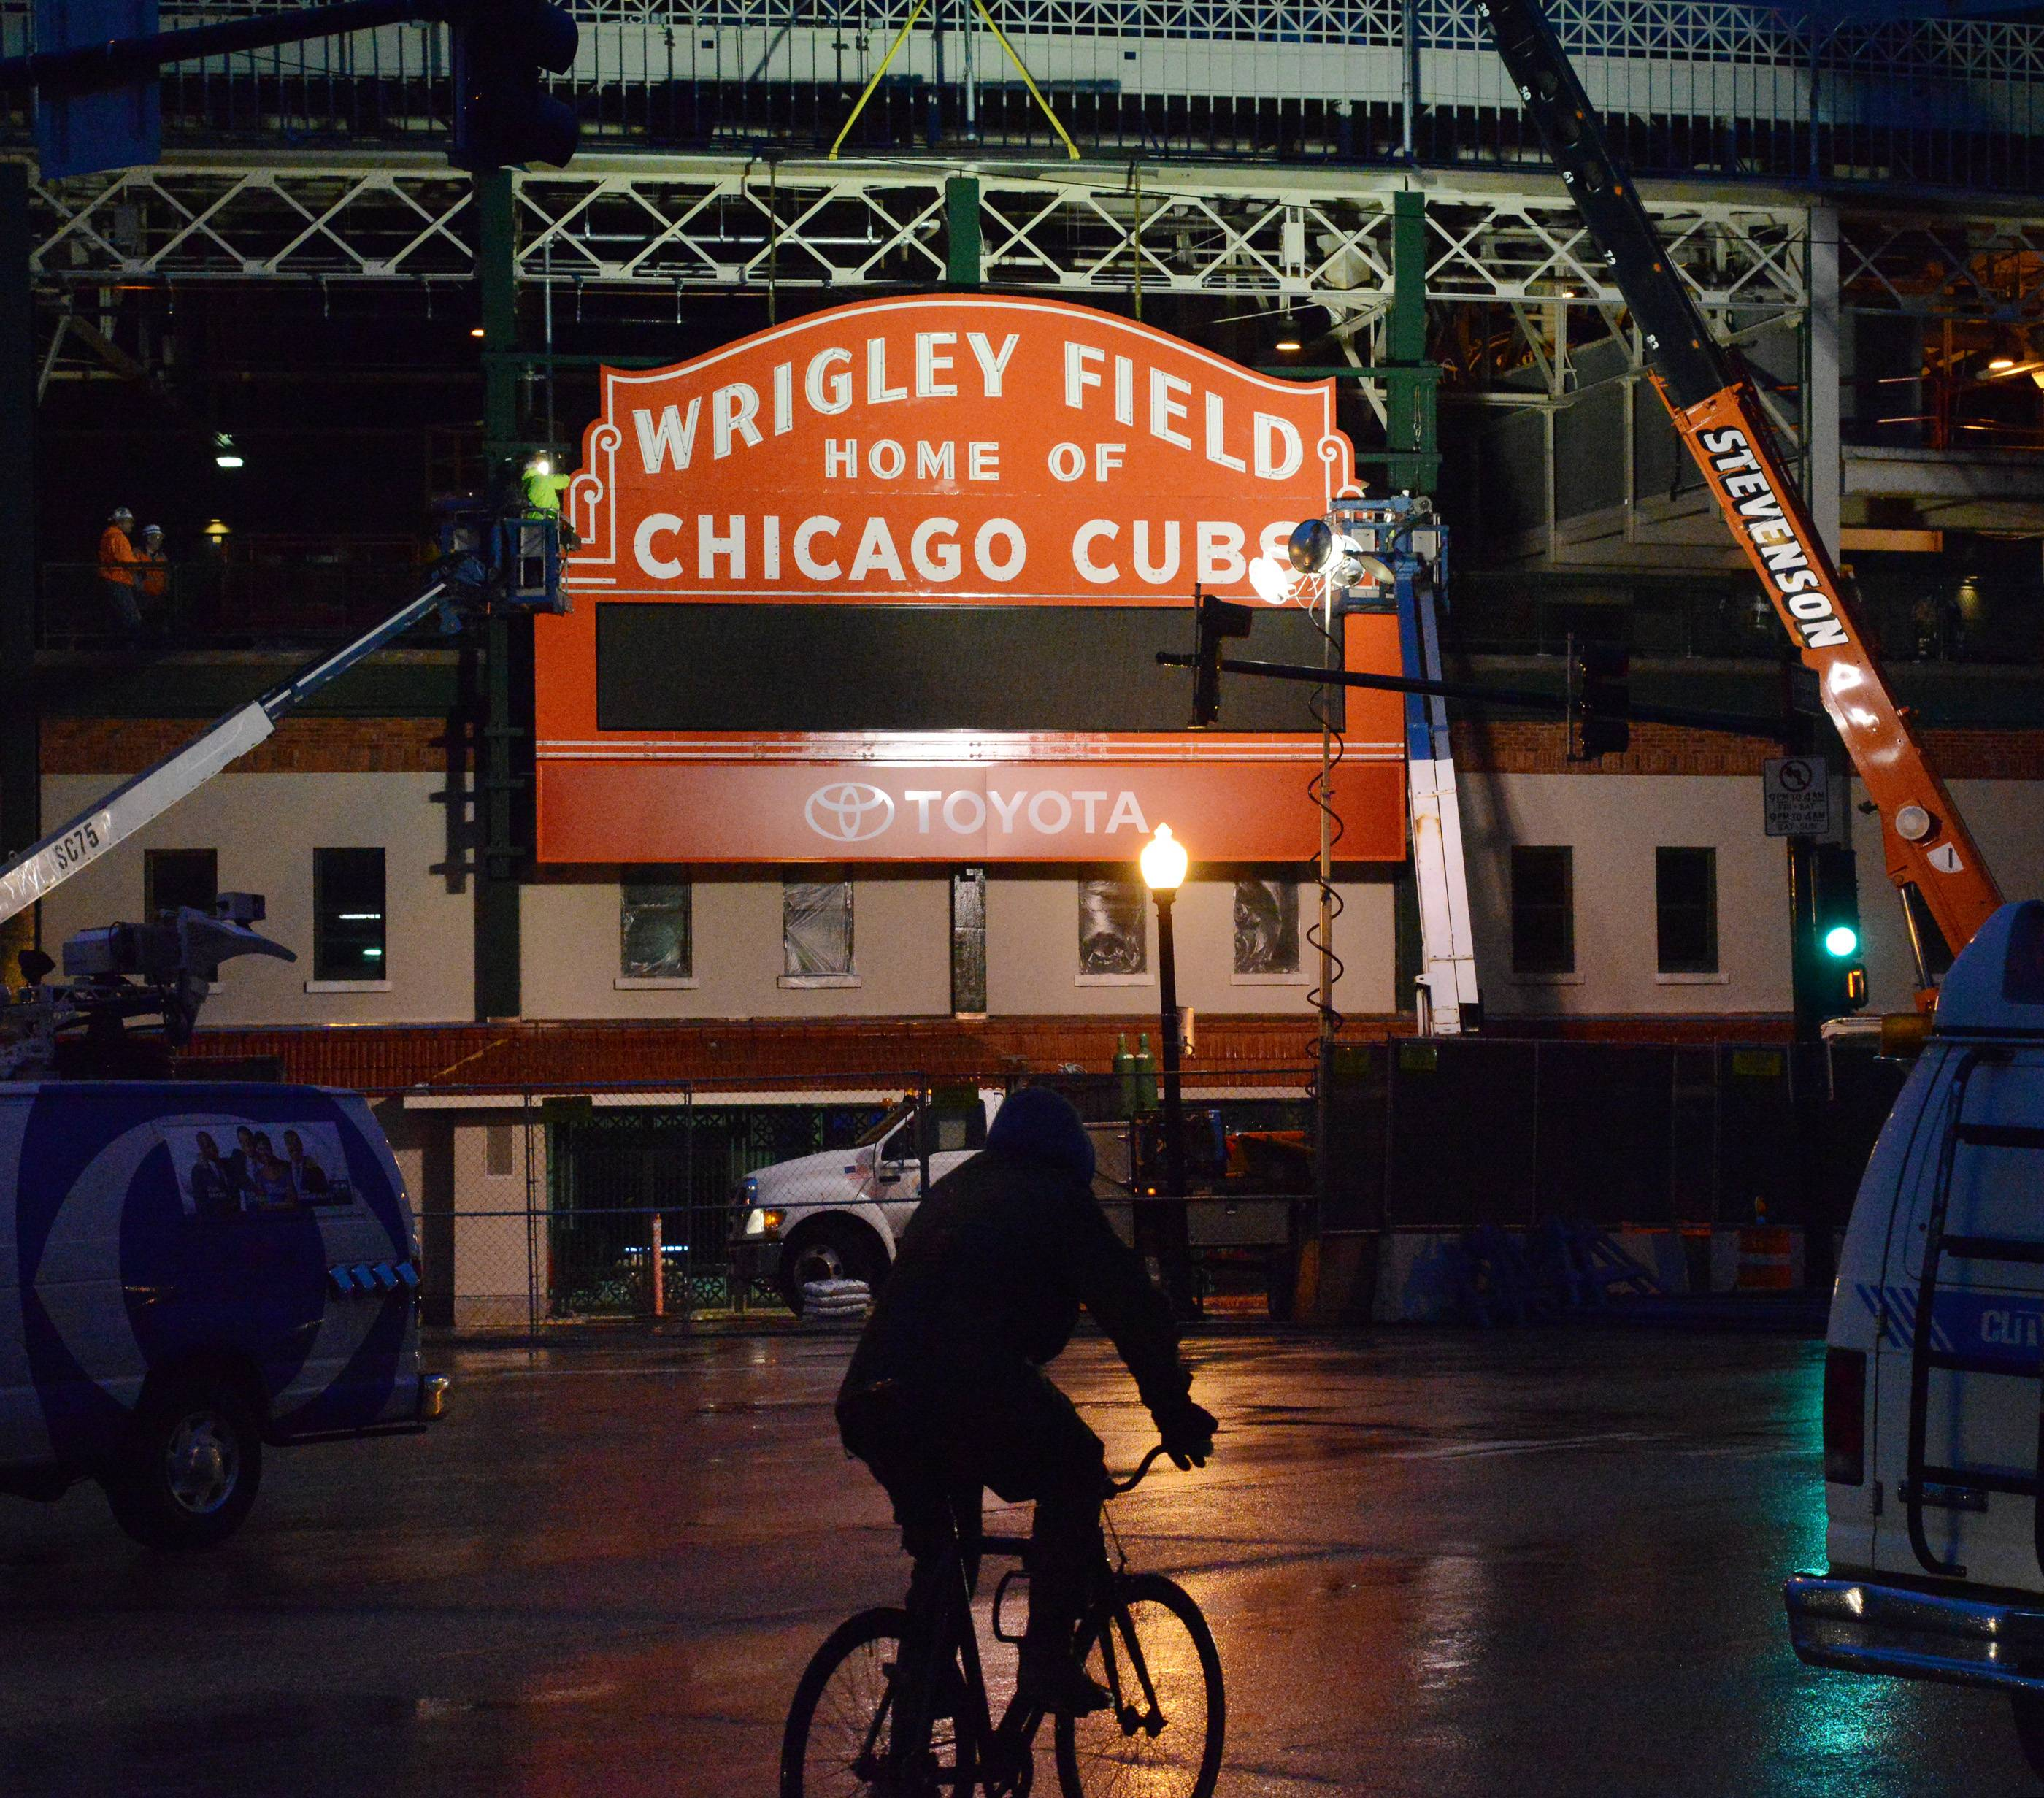 Why Chicago Cubs fans shouldn't drive to home opener at Wrigley